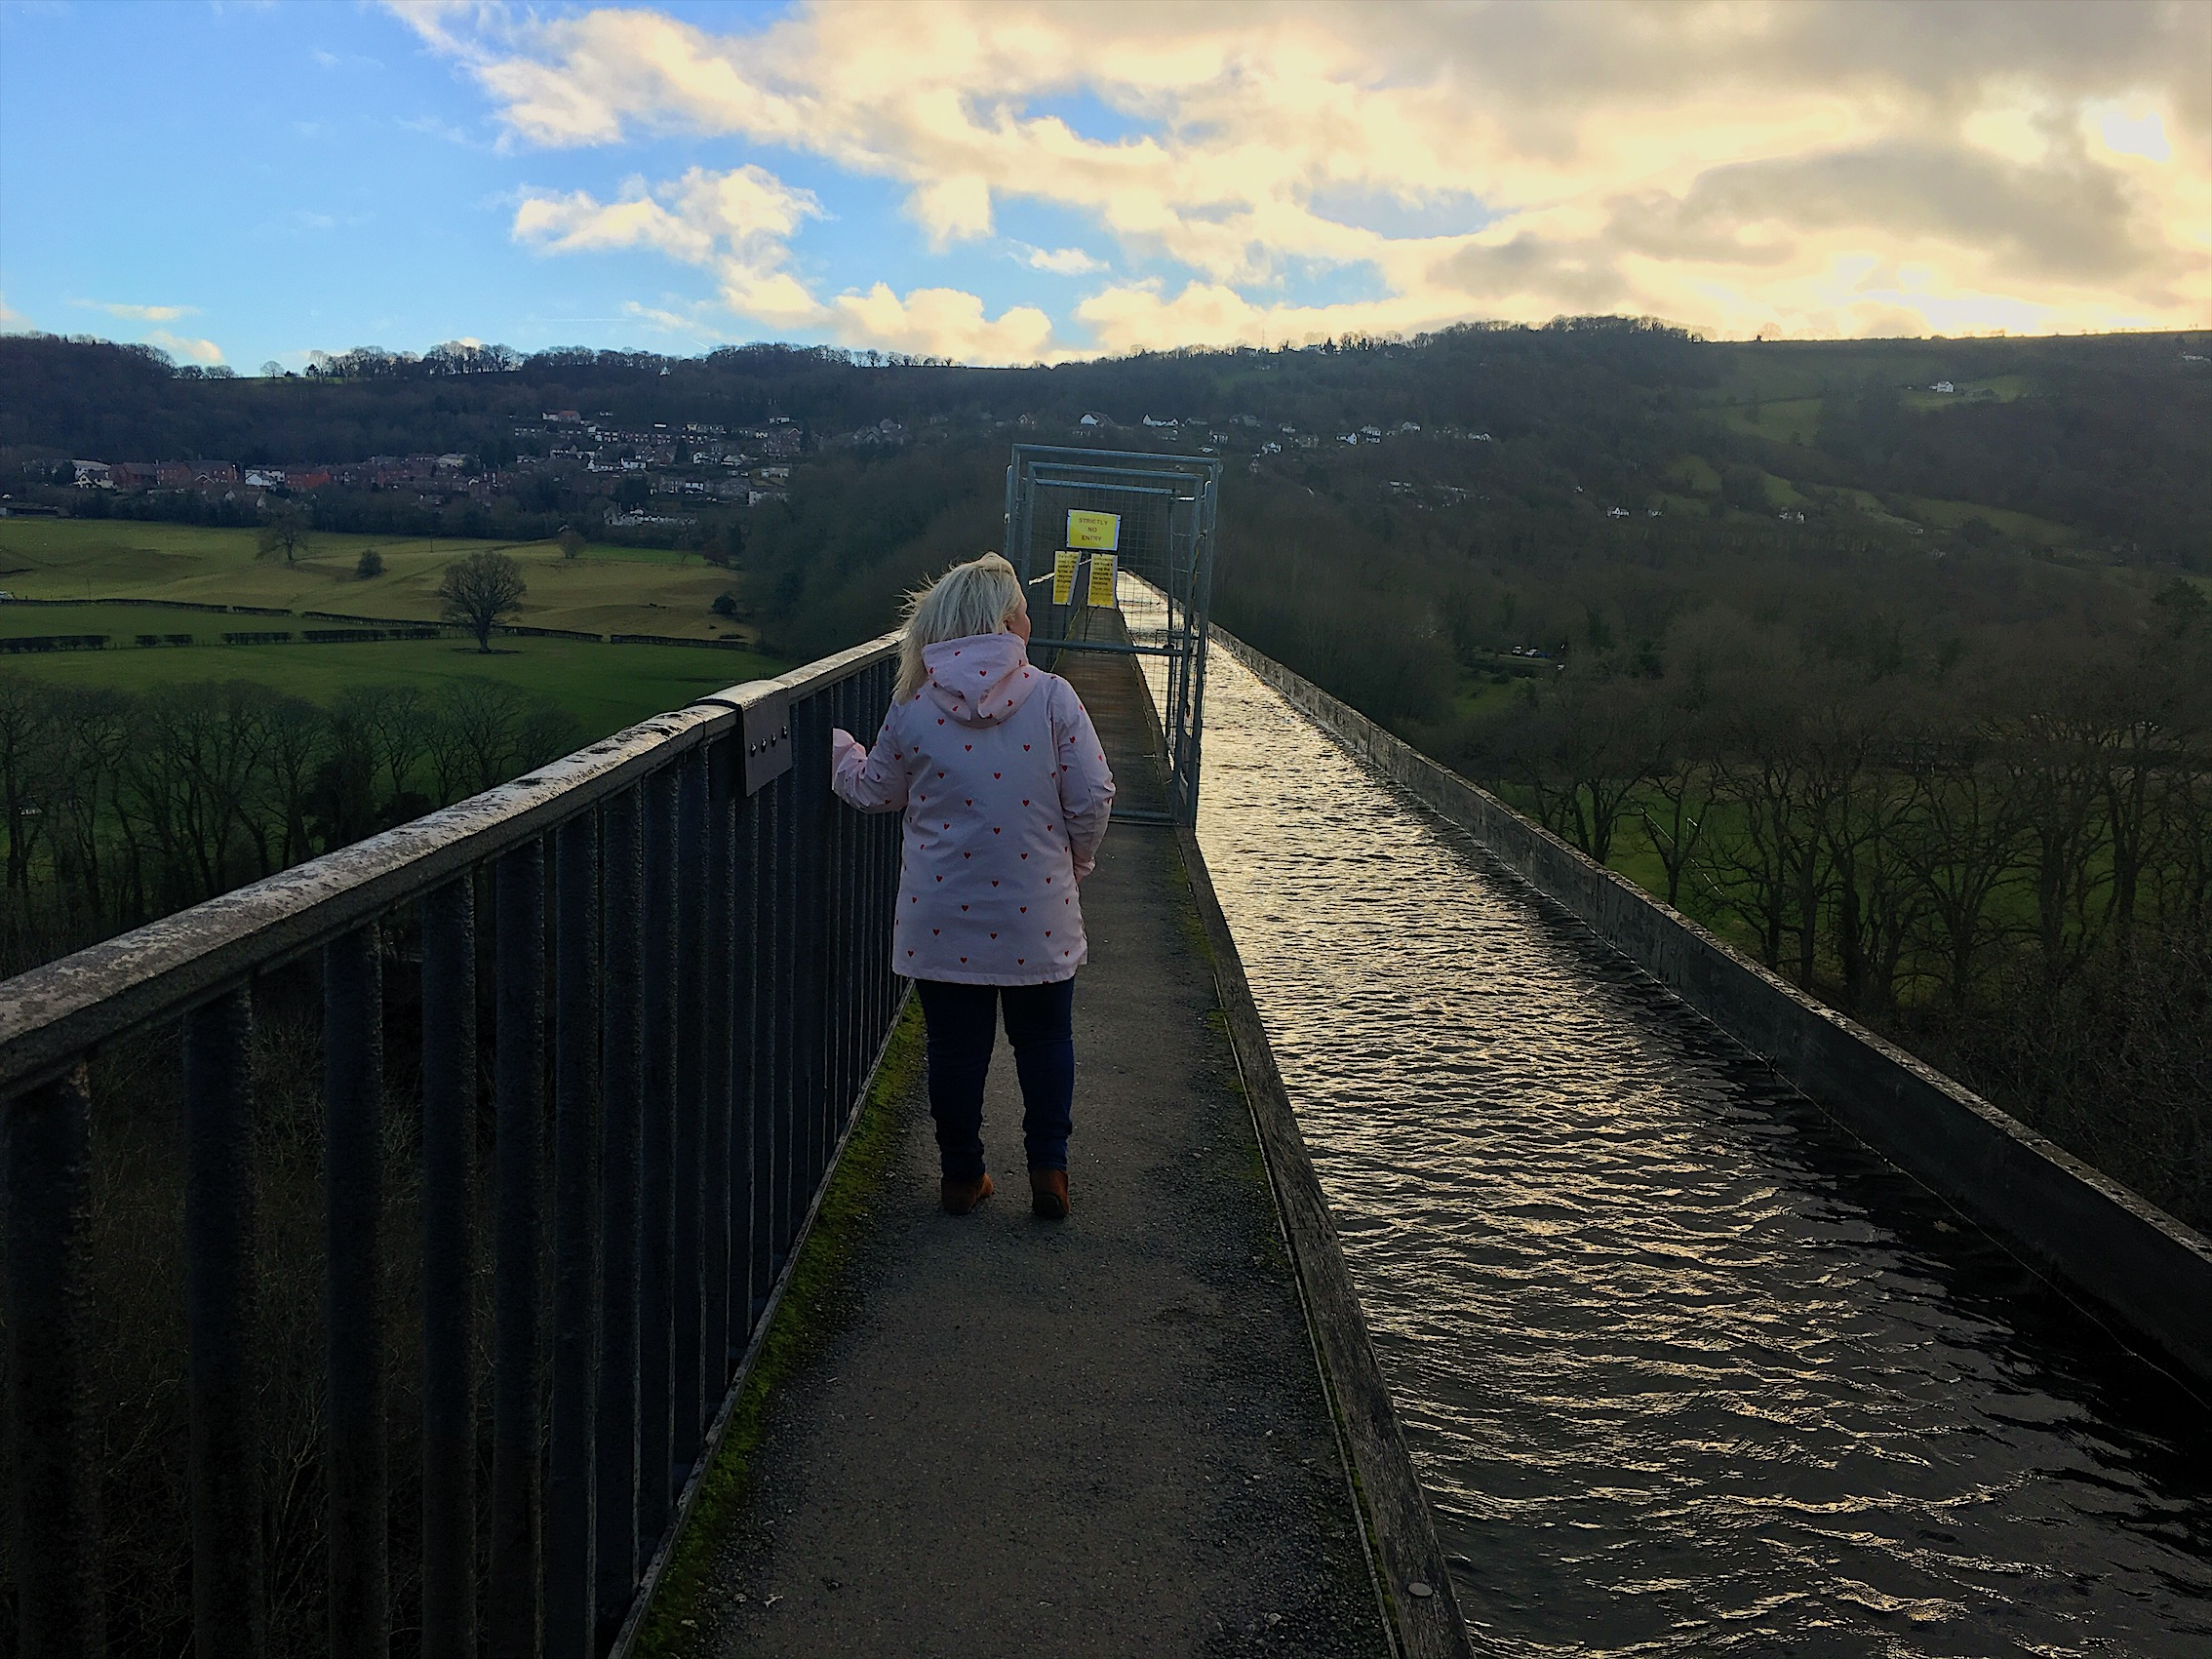 A photo of me at Pontcysyllte Aqueduct, while exploring some of the best things to do in Wrexham.